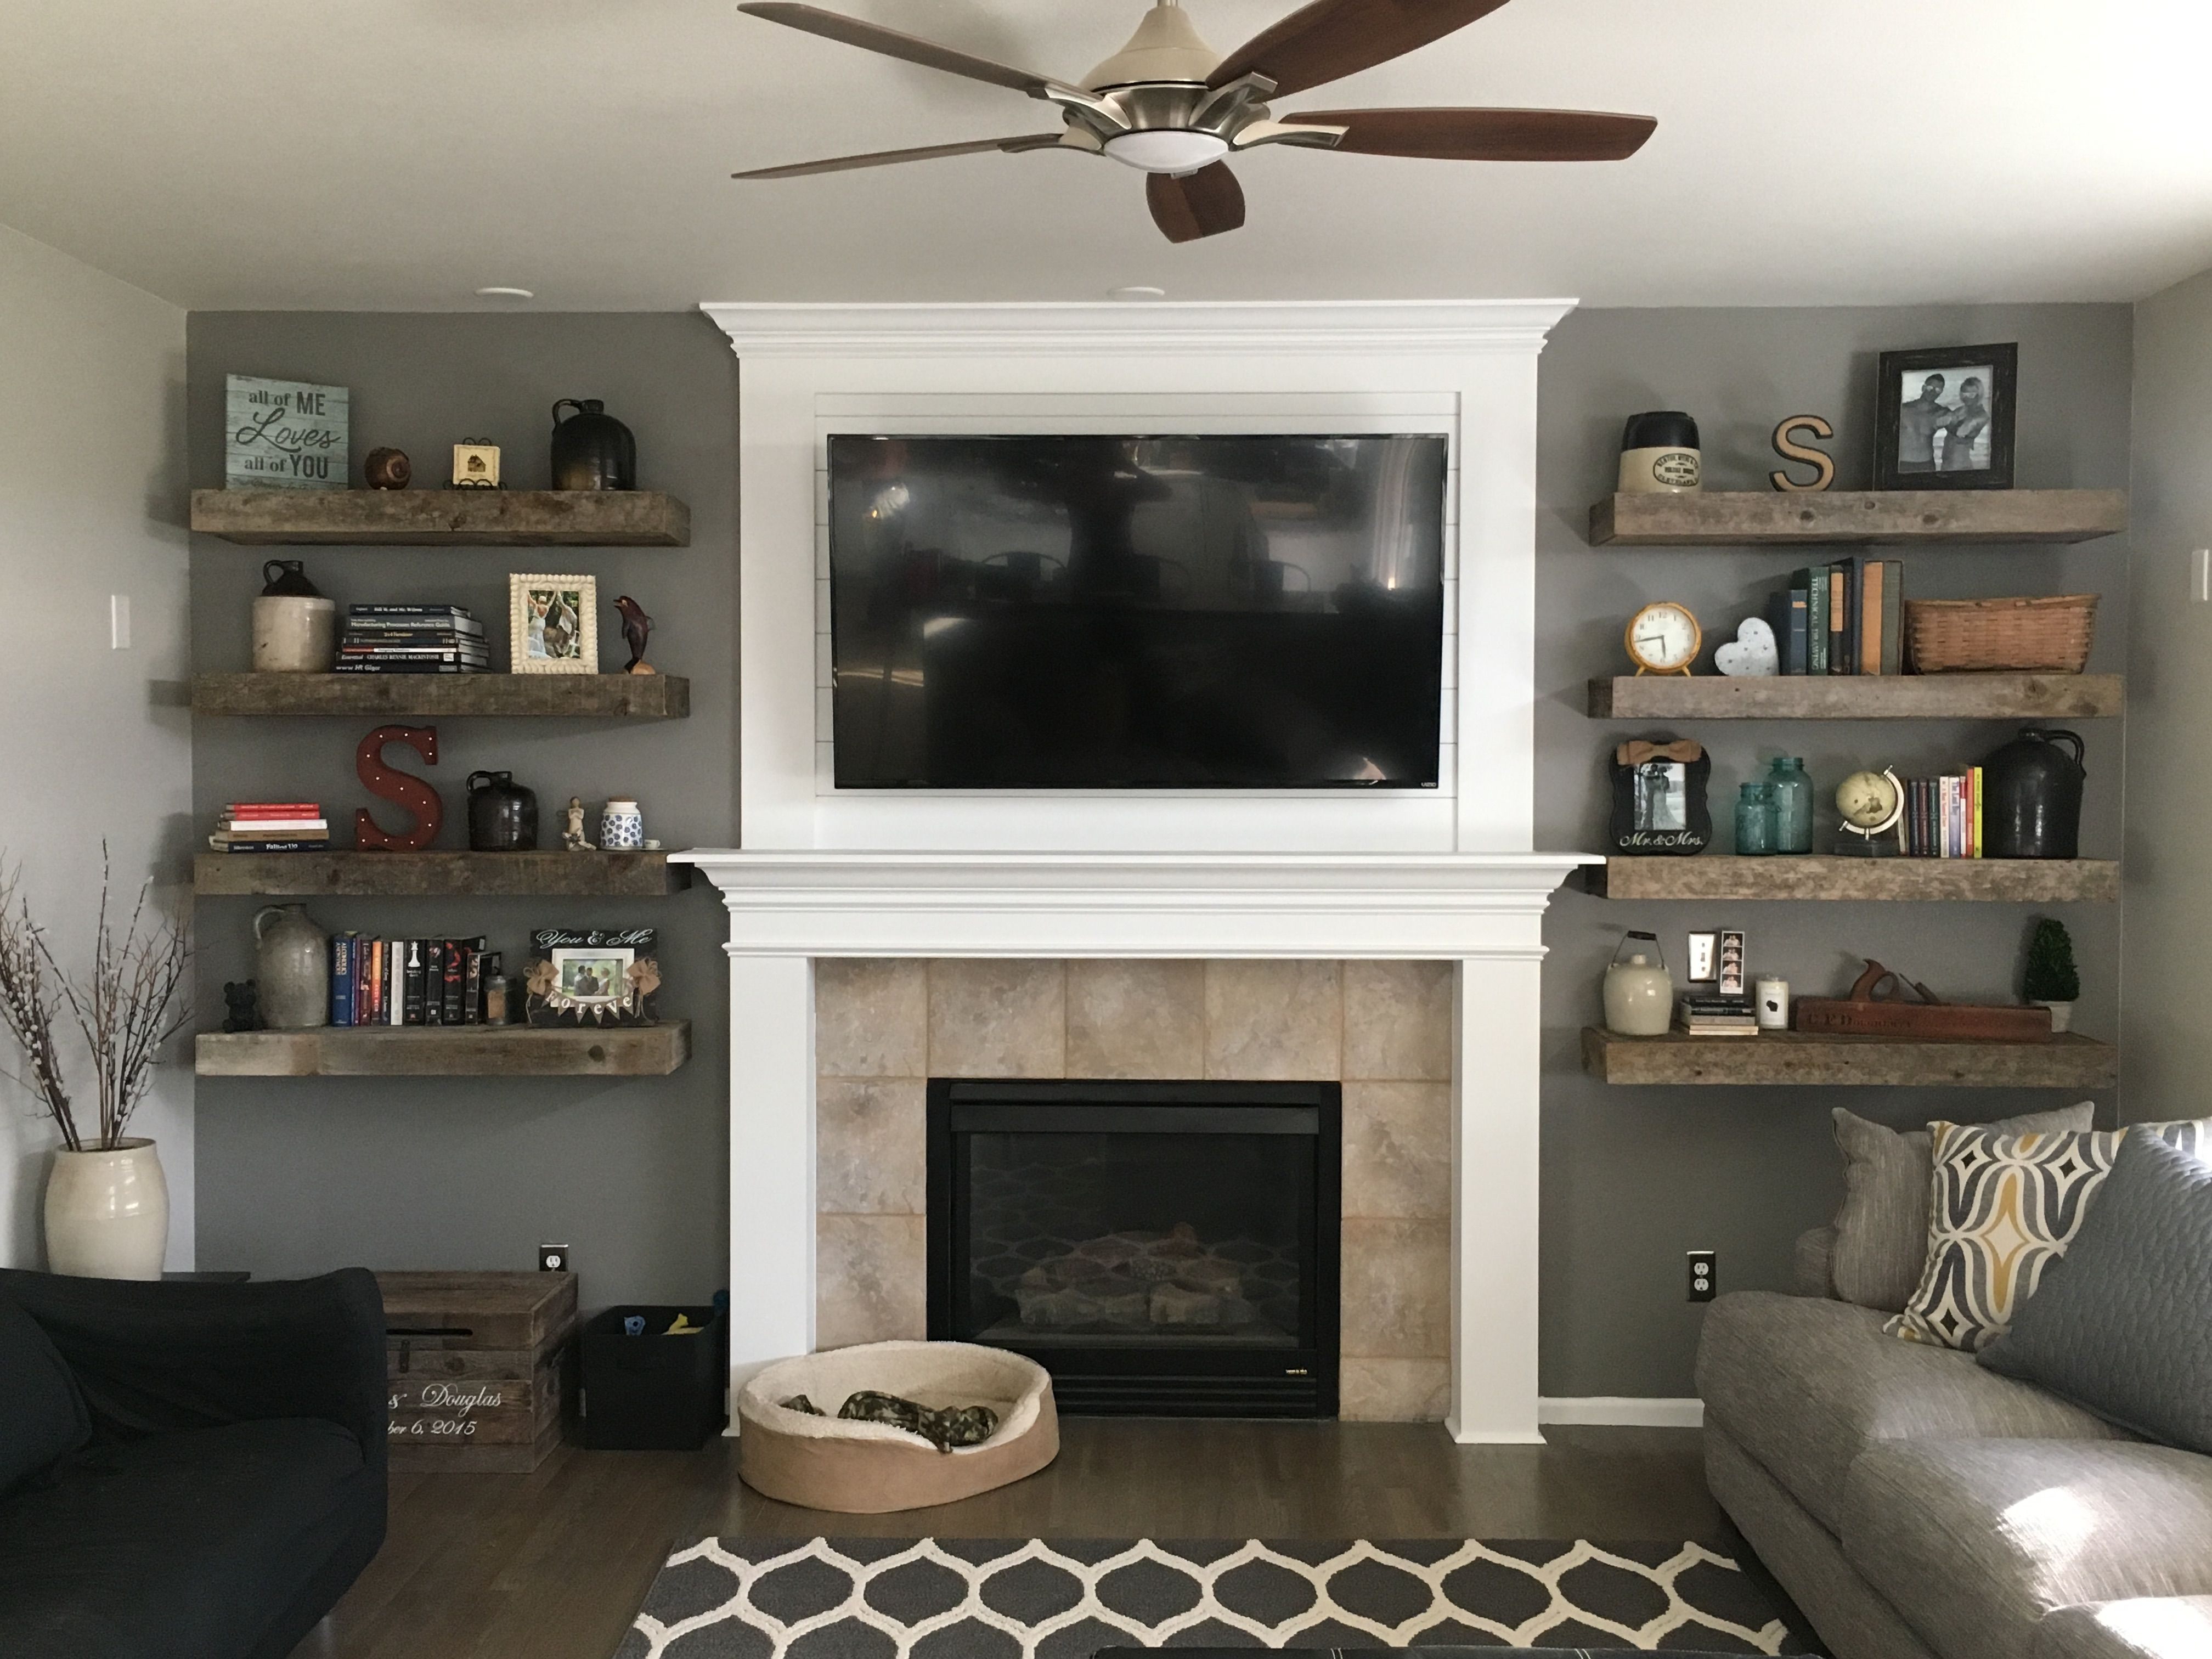 rustic living room barnwood floating shelves shiplap fireplace wall books and decor home sweet husband did the bunnings metal shelving units mount that holds cable box target cube